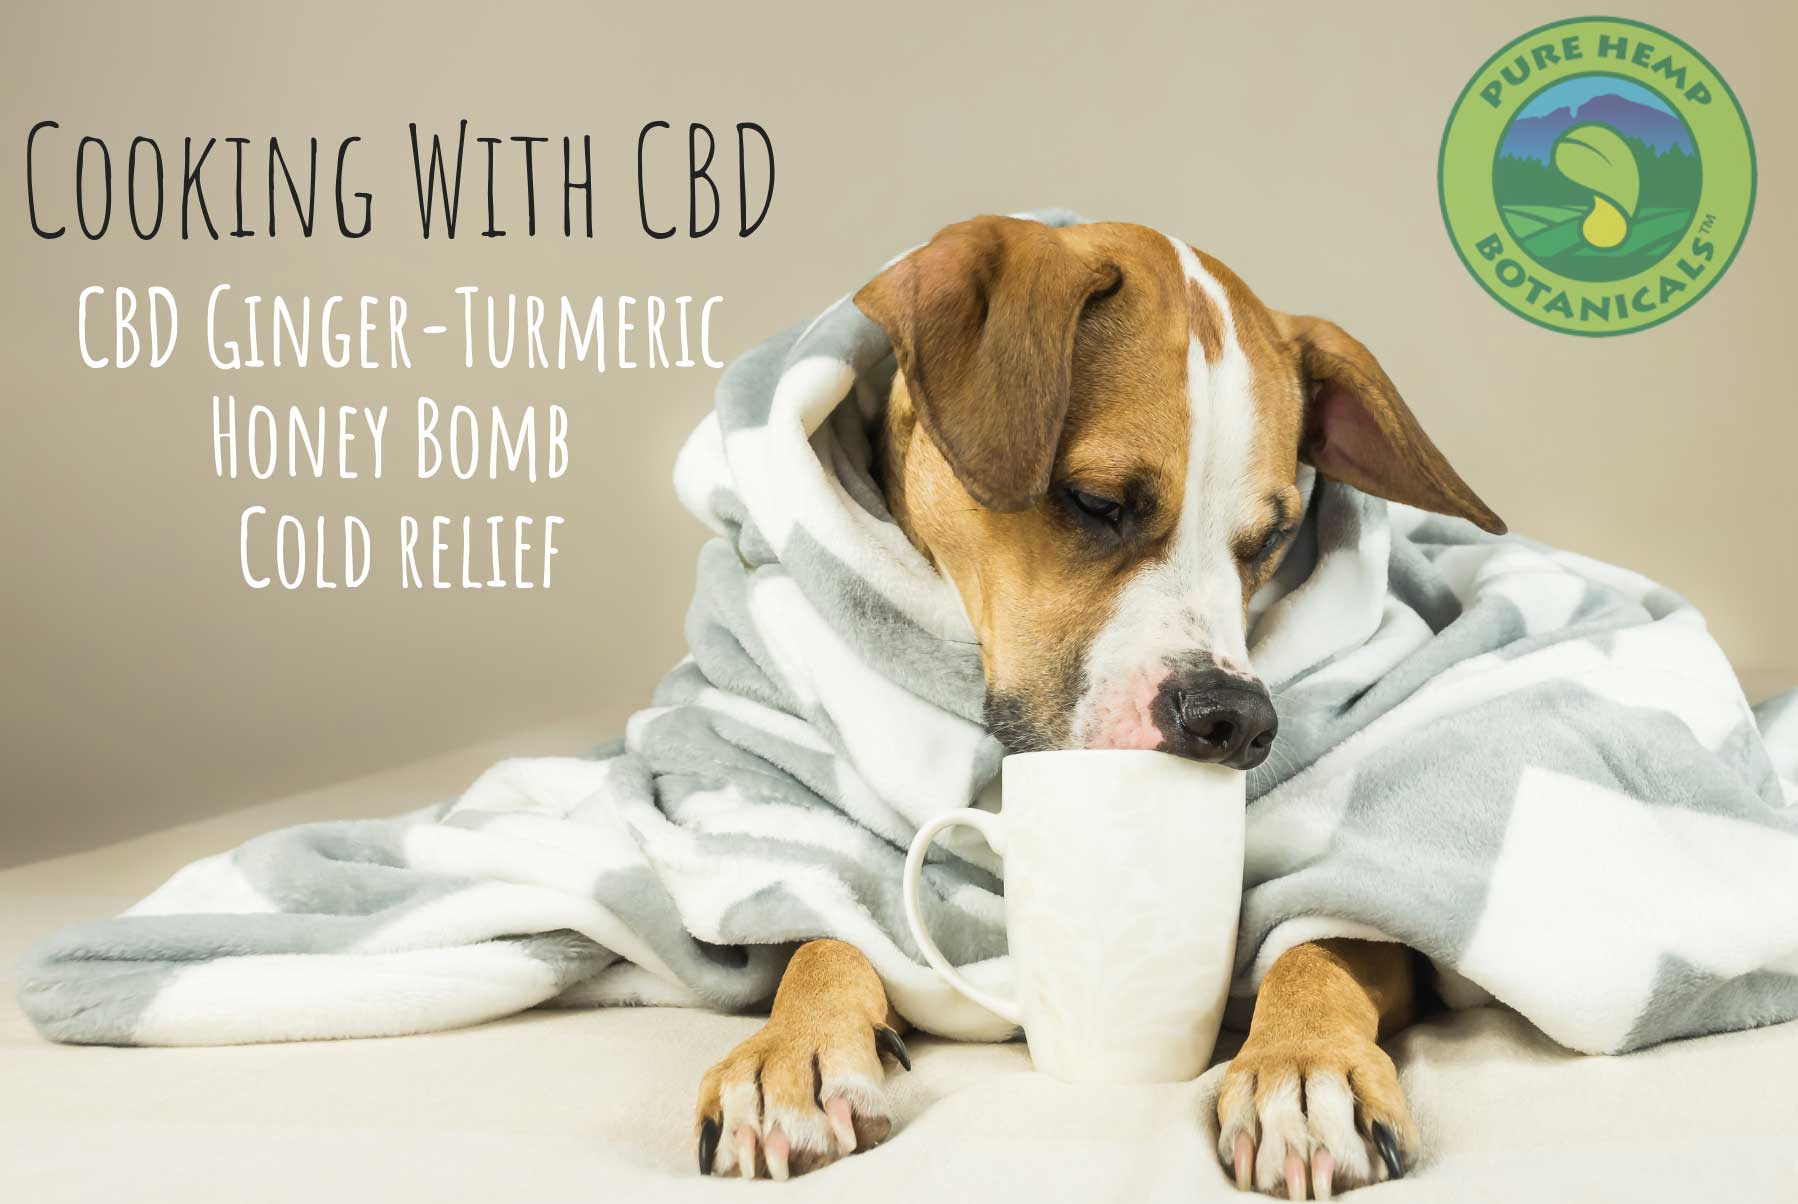 Cooking With CBD: Ginger-Turmeric Honey Bomb For Cold Relief!